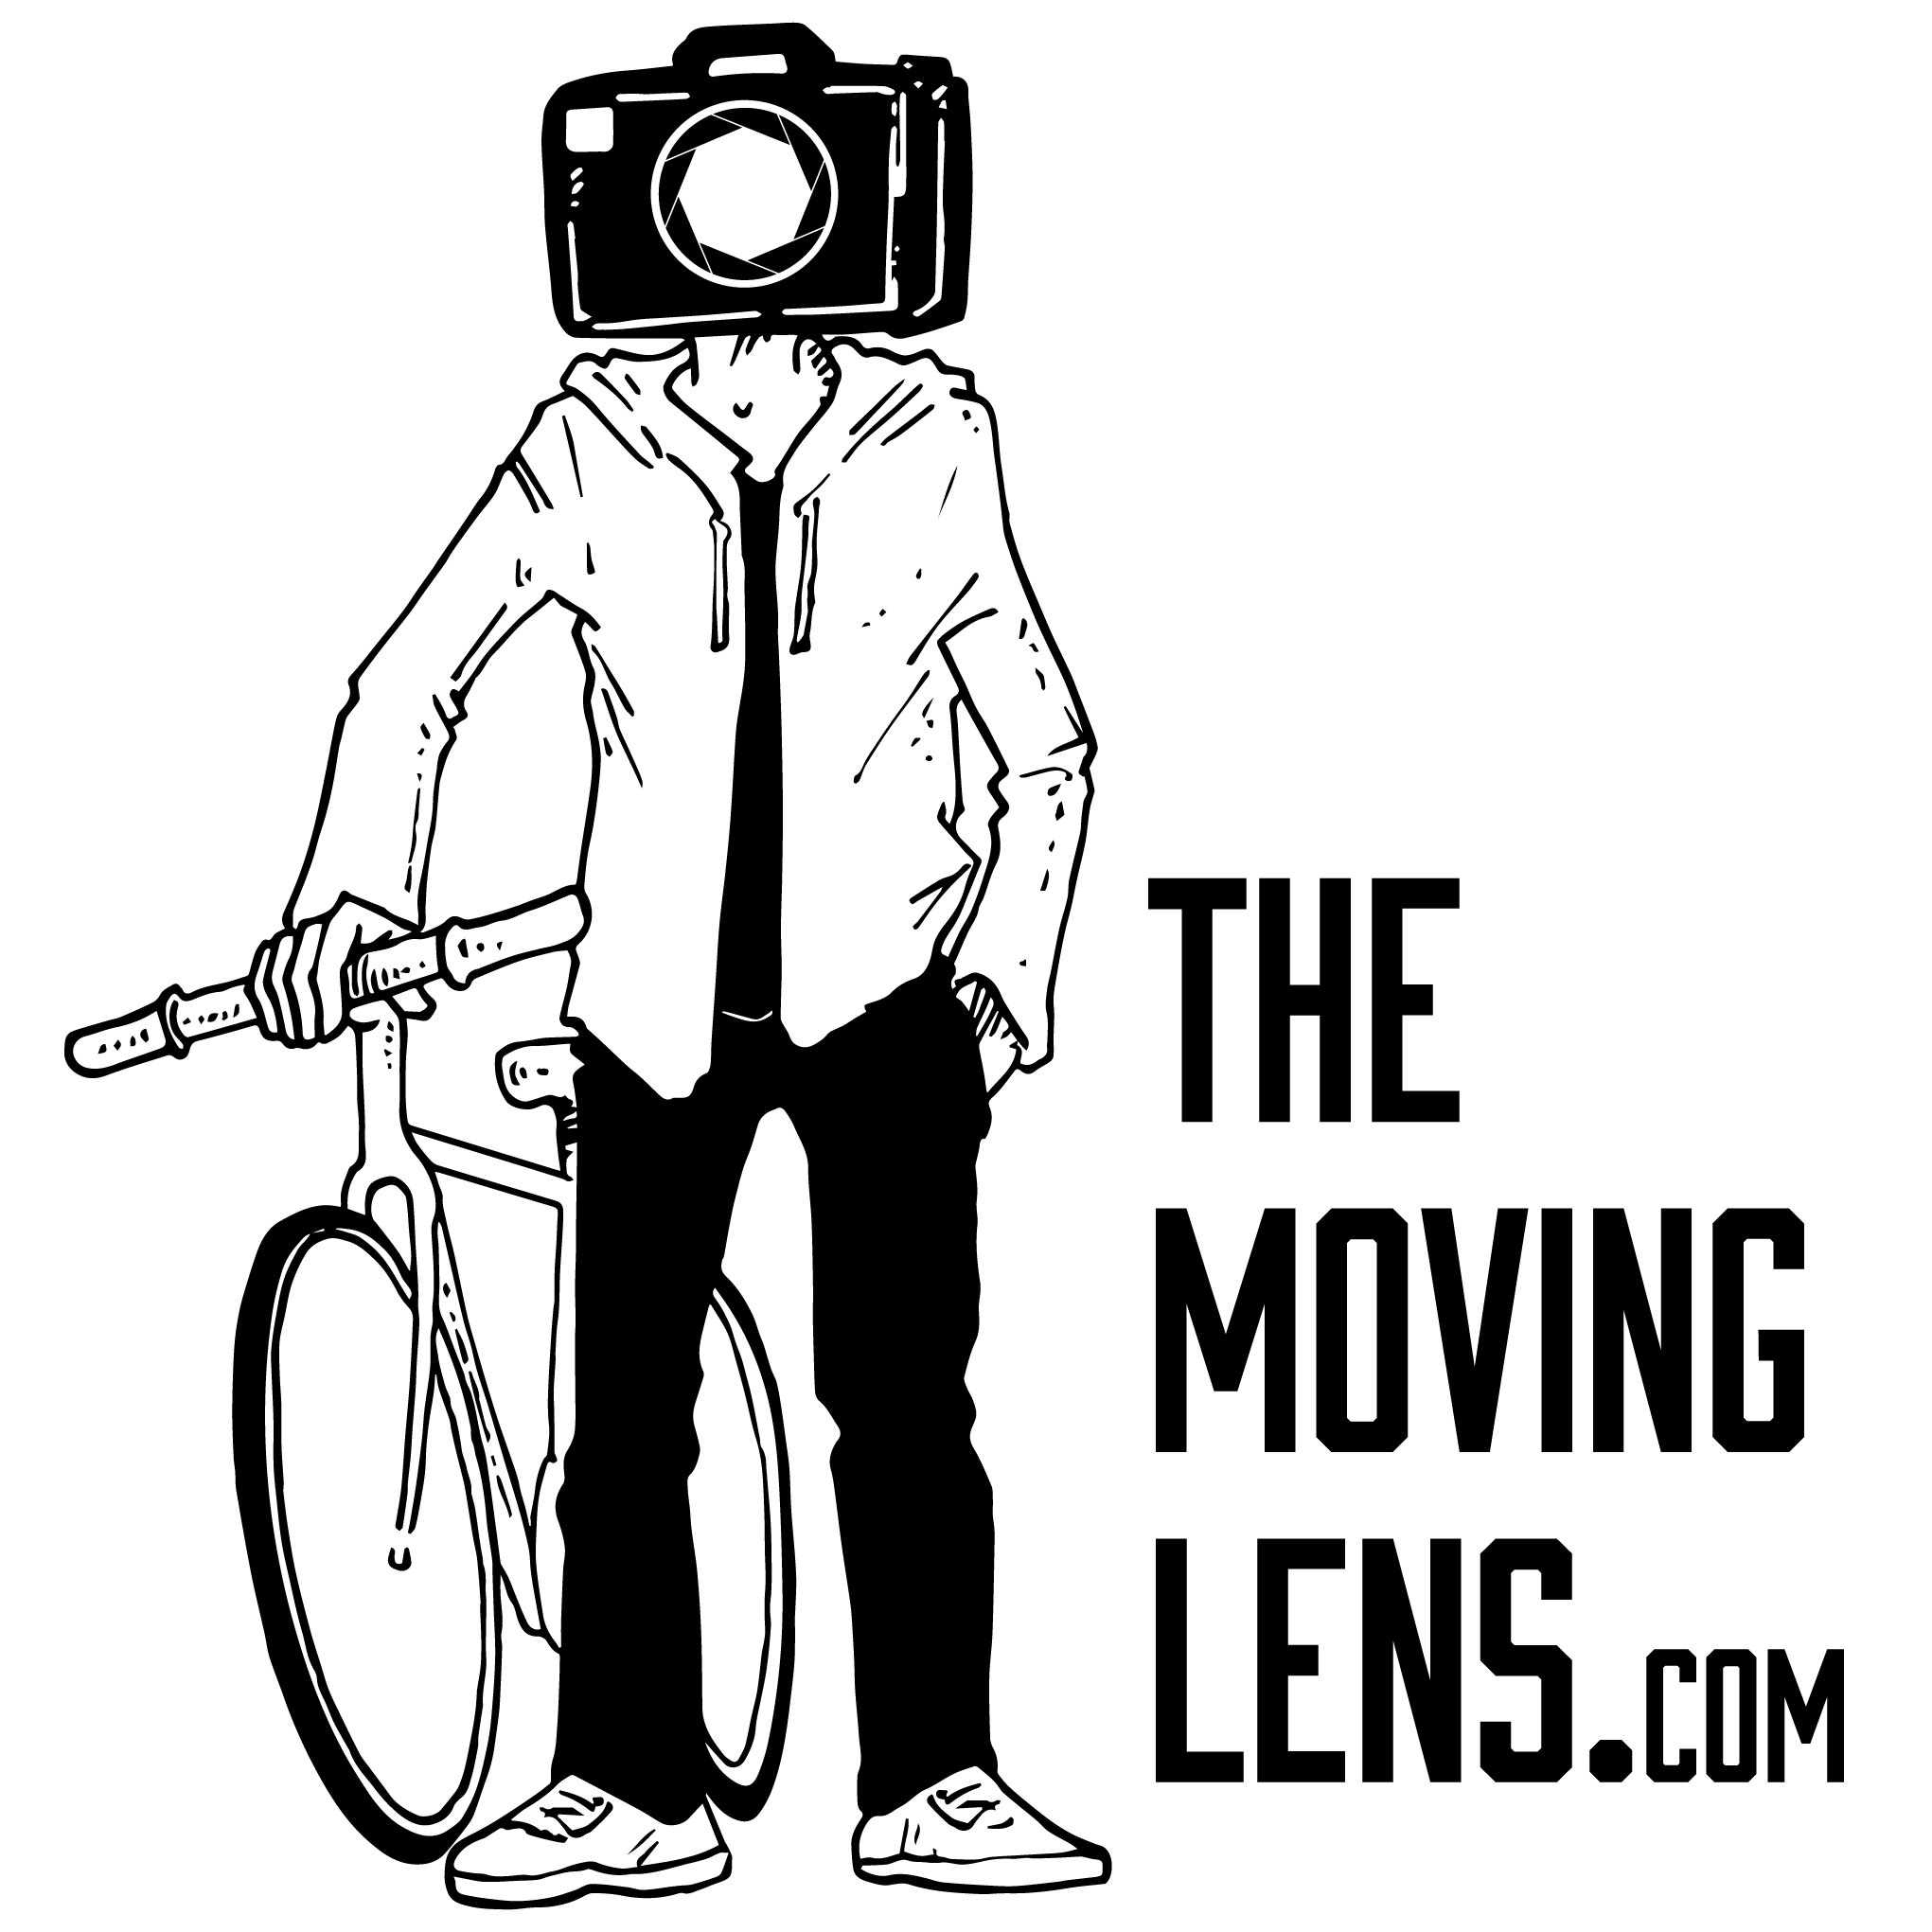 The Moving Lens